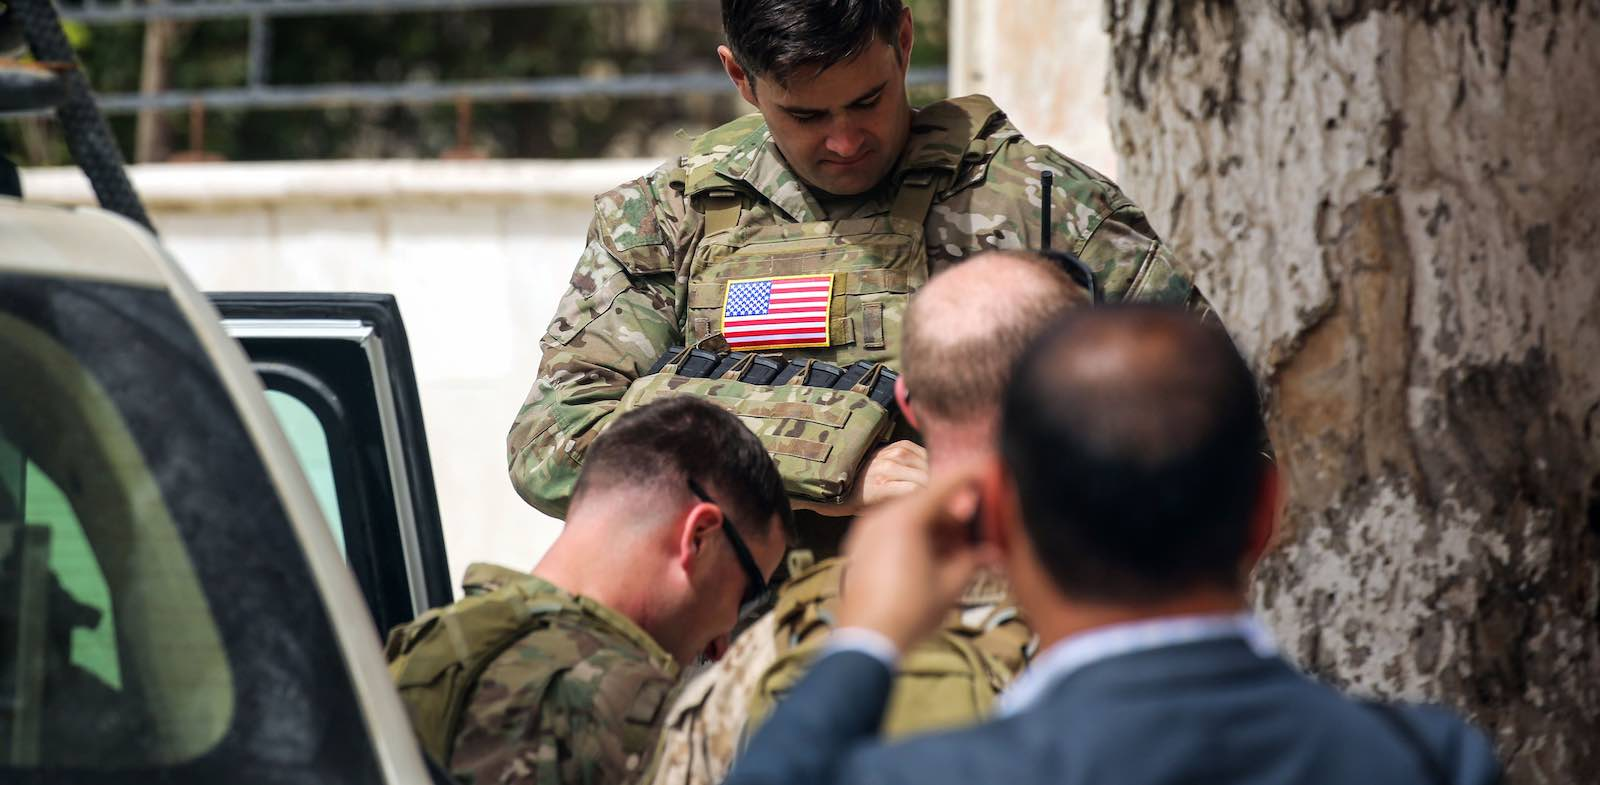 US soldiers in the northern Syrian city of Manbij in March, 2018 (Photo: Delil Souleiman via Getty)